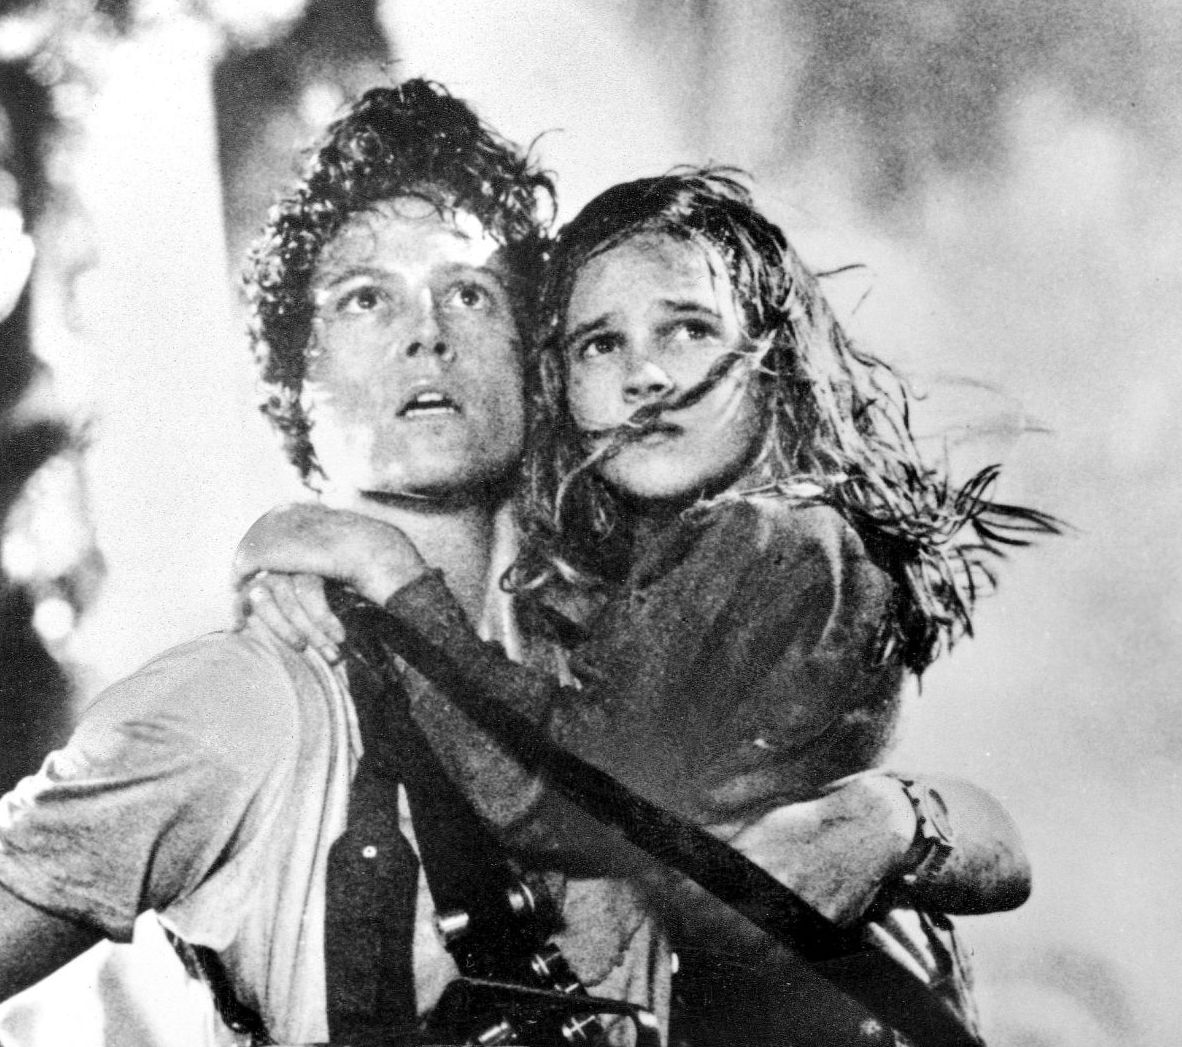 Ripley and Newt in Aliens 1986